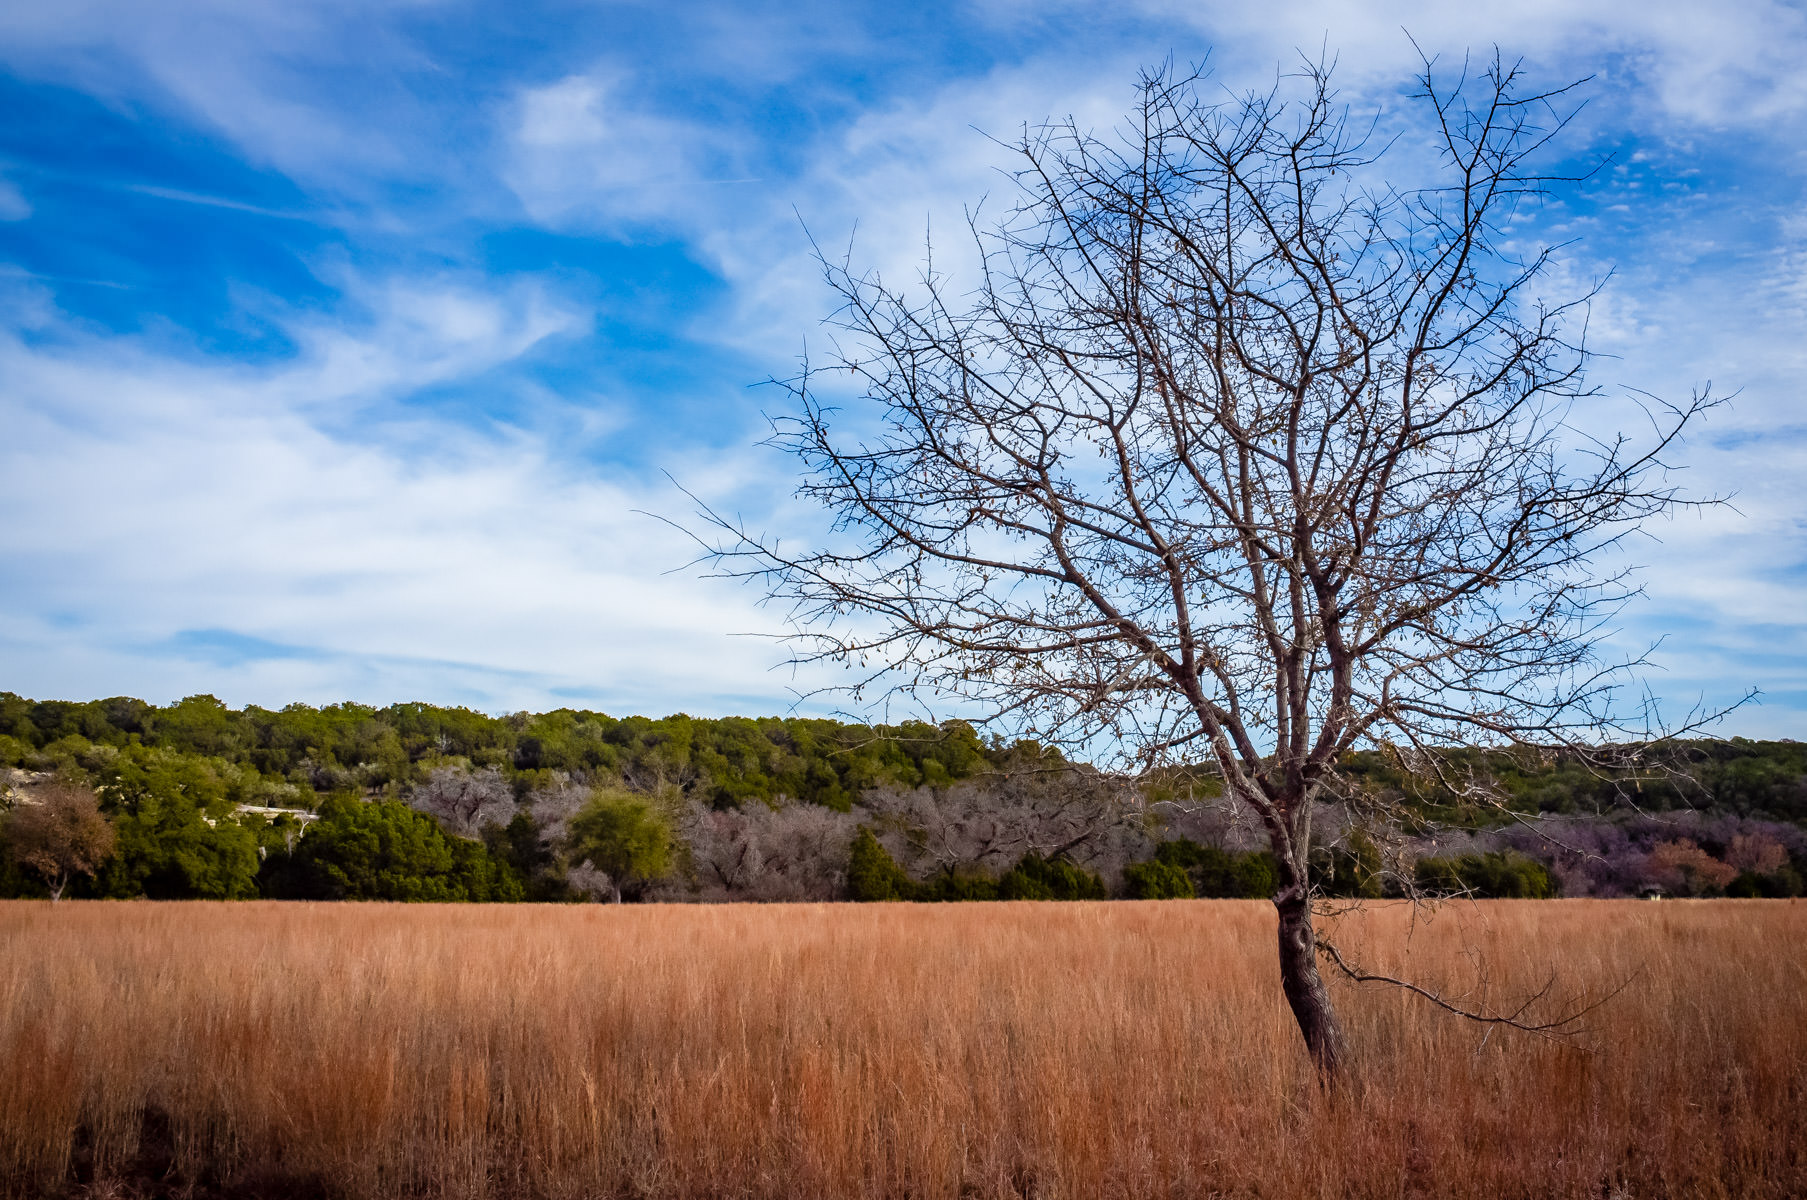 A lonesome tree grows in a field at Dinosaur Valley State Park near Glen Rose, Texas.